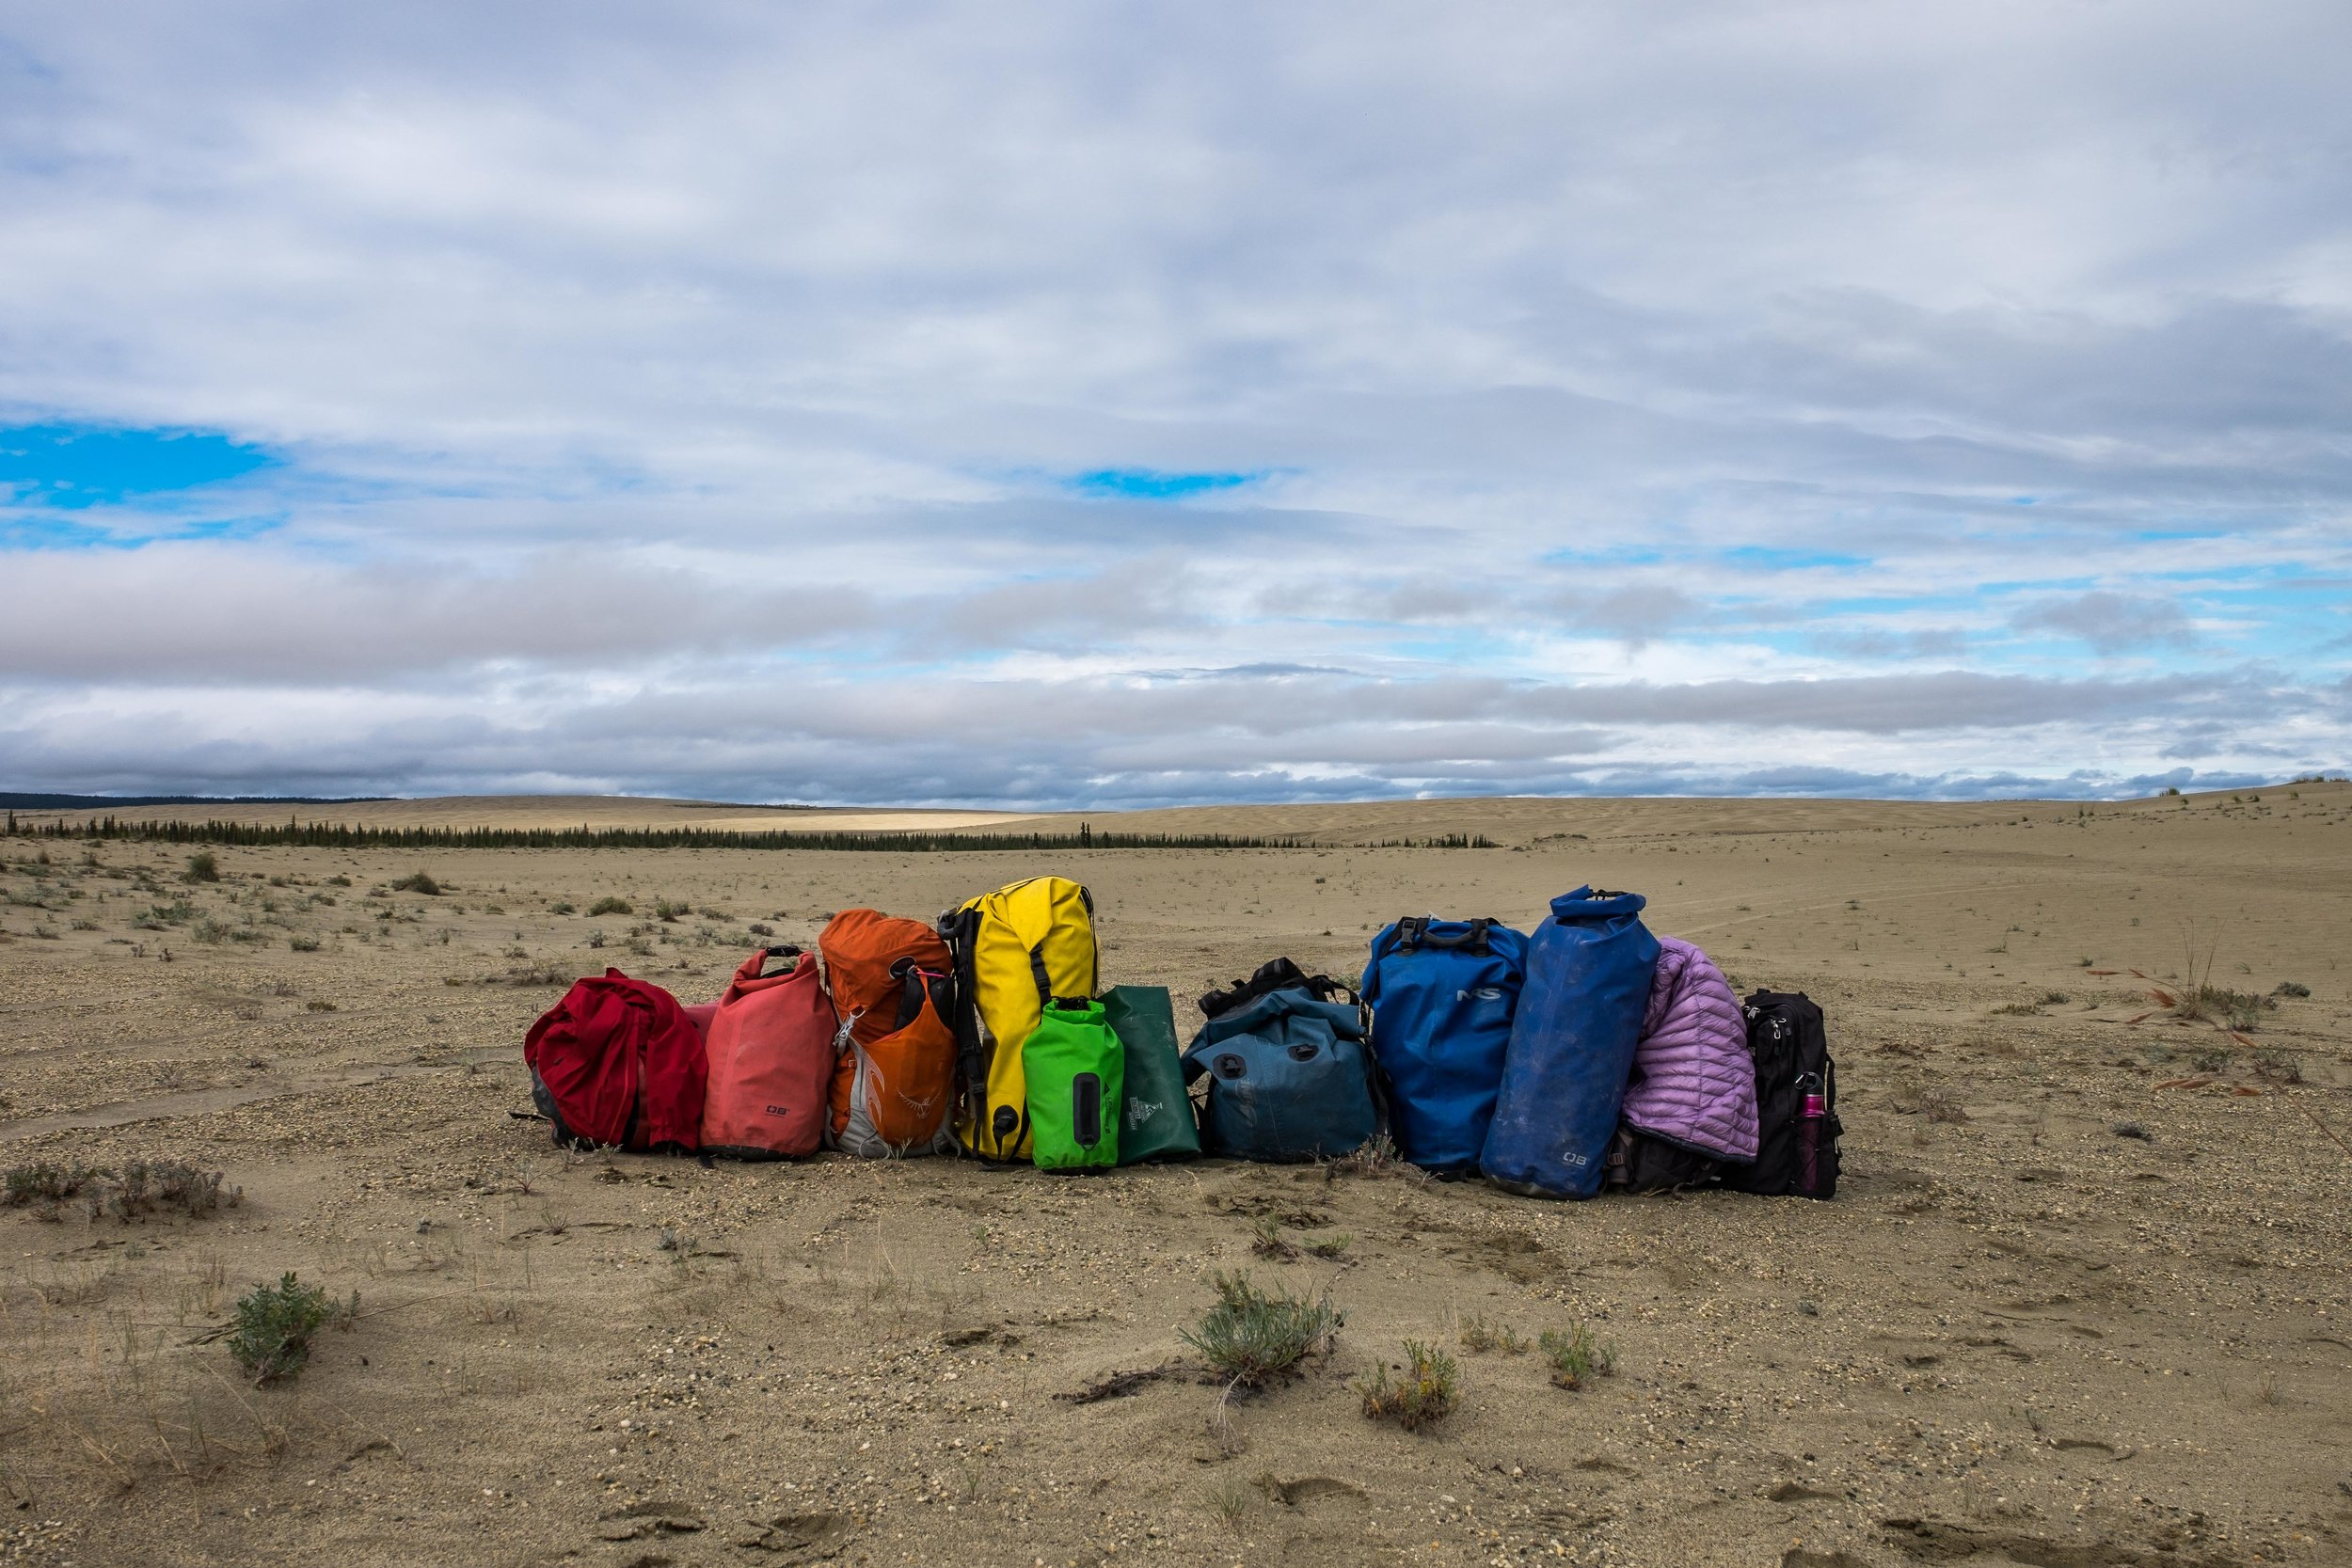 Our gear for the four days we are there....arranged in a rainbow!